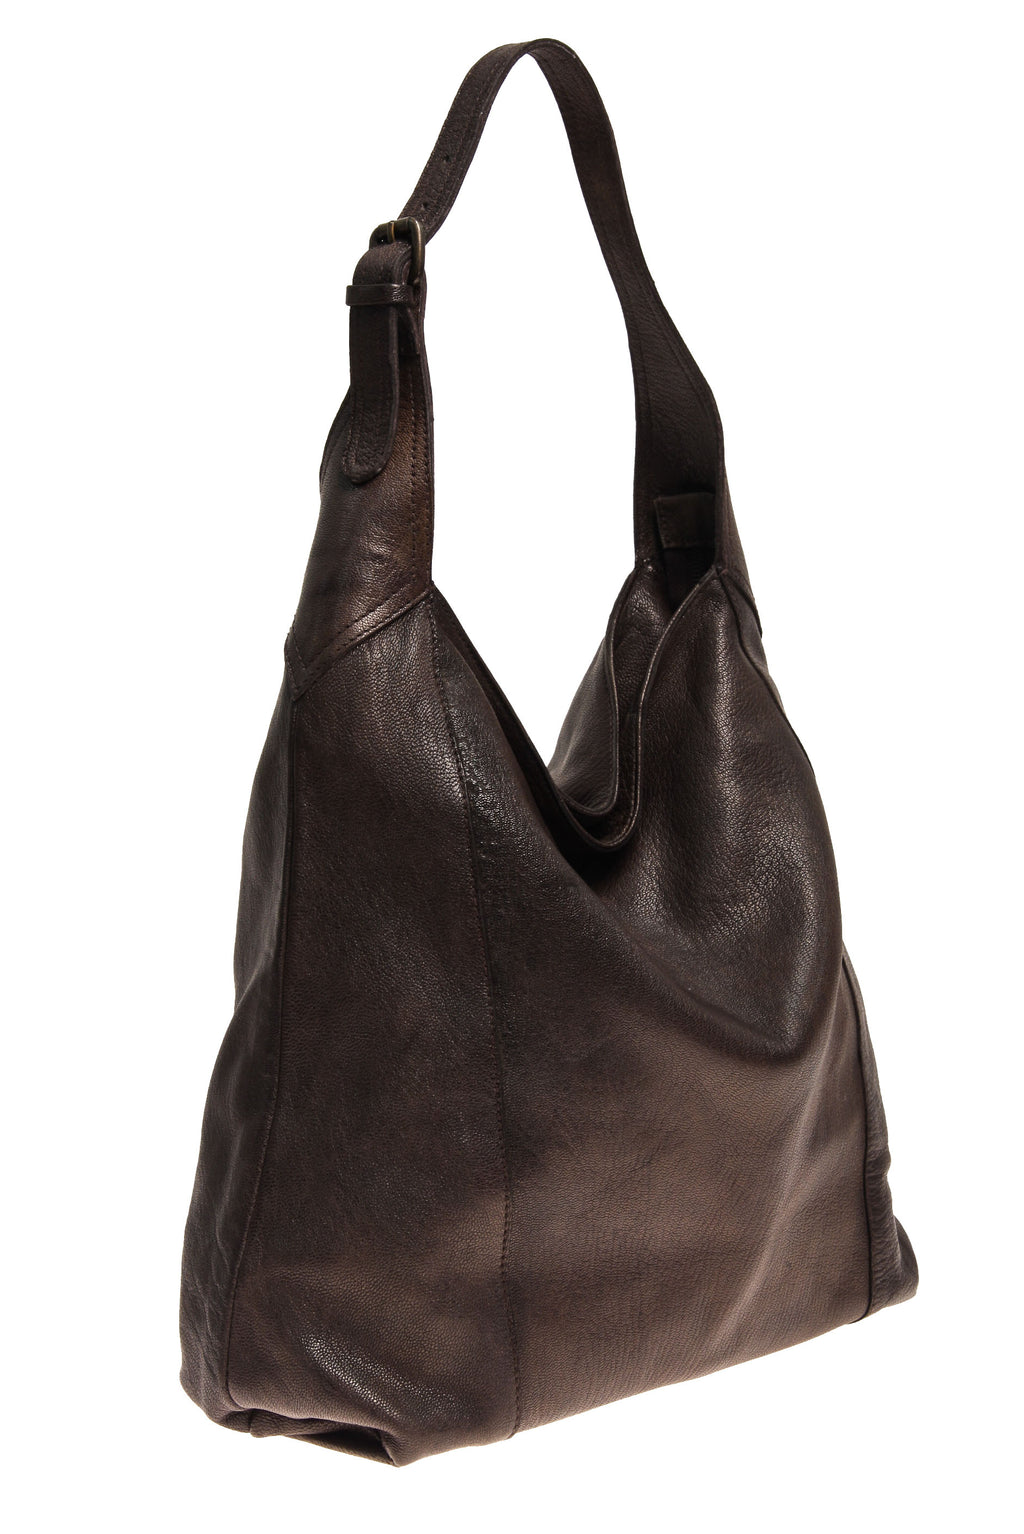 Tano Simple Hobo with Buckle Detail (1324820004948)